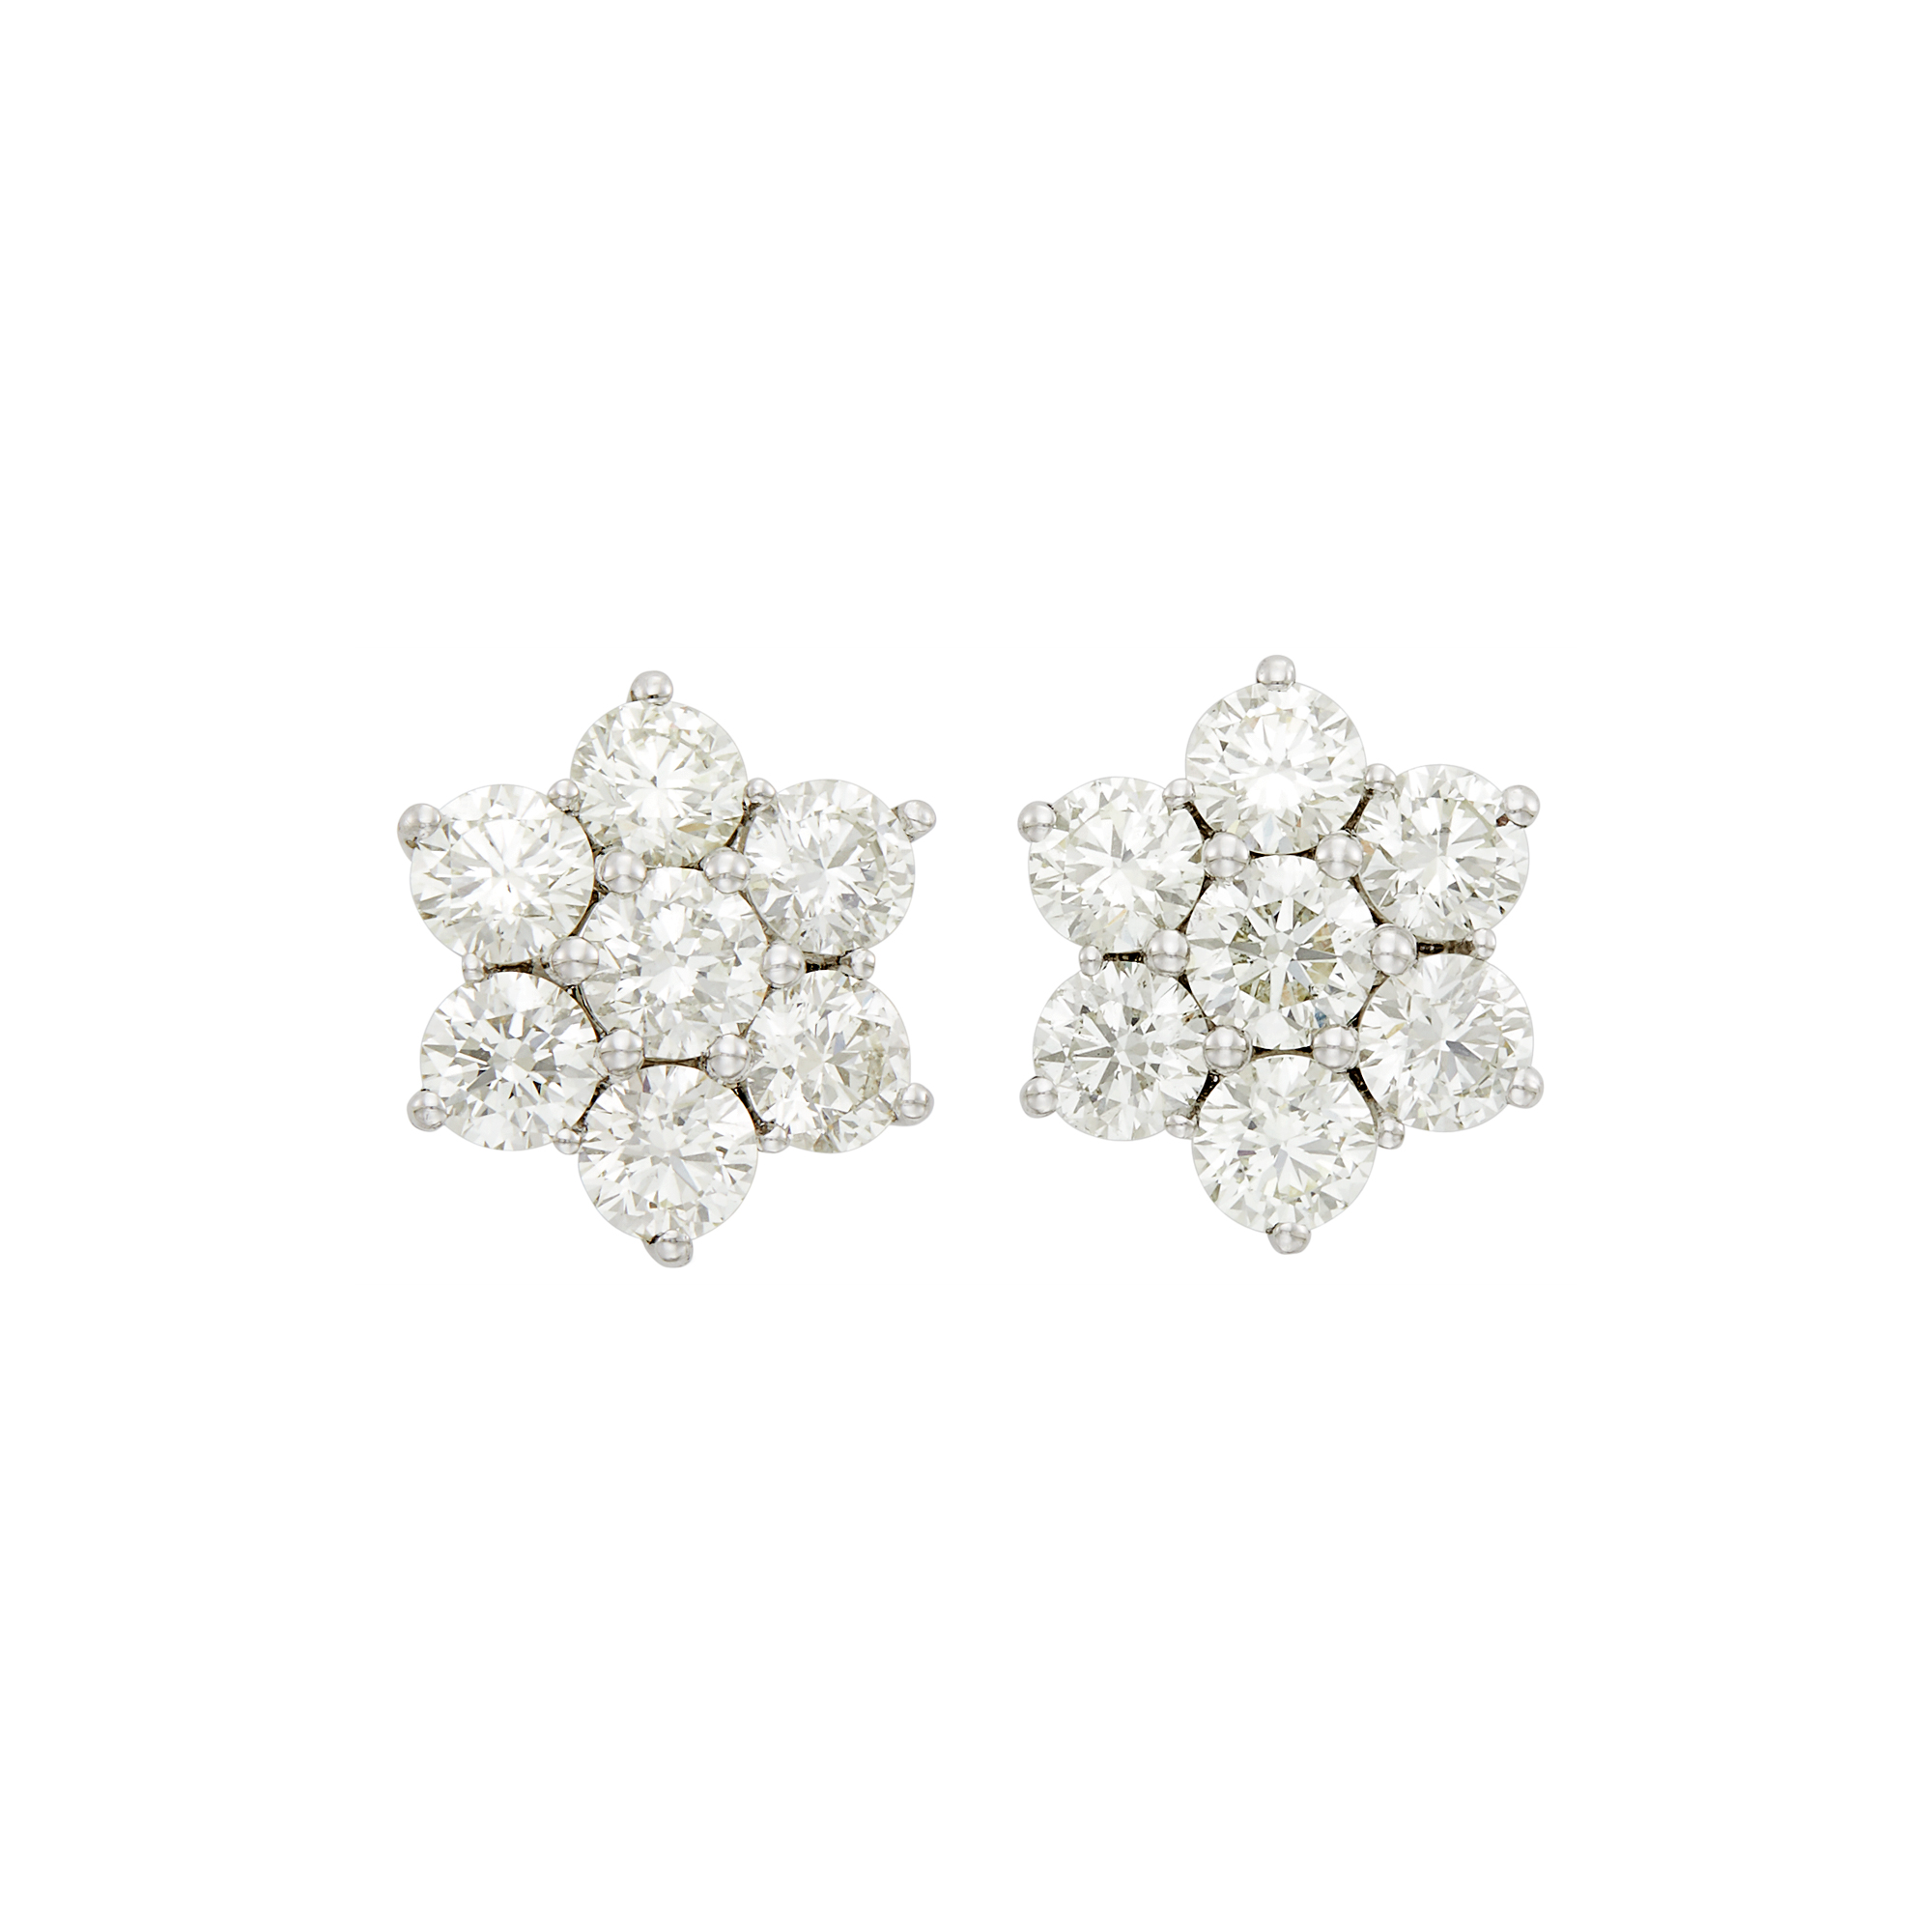 Lot image - Pair of Platinum and Diamond Floret Earrings